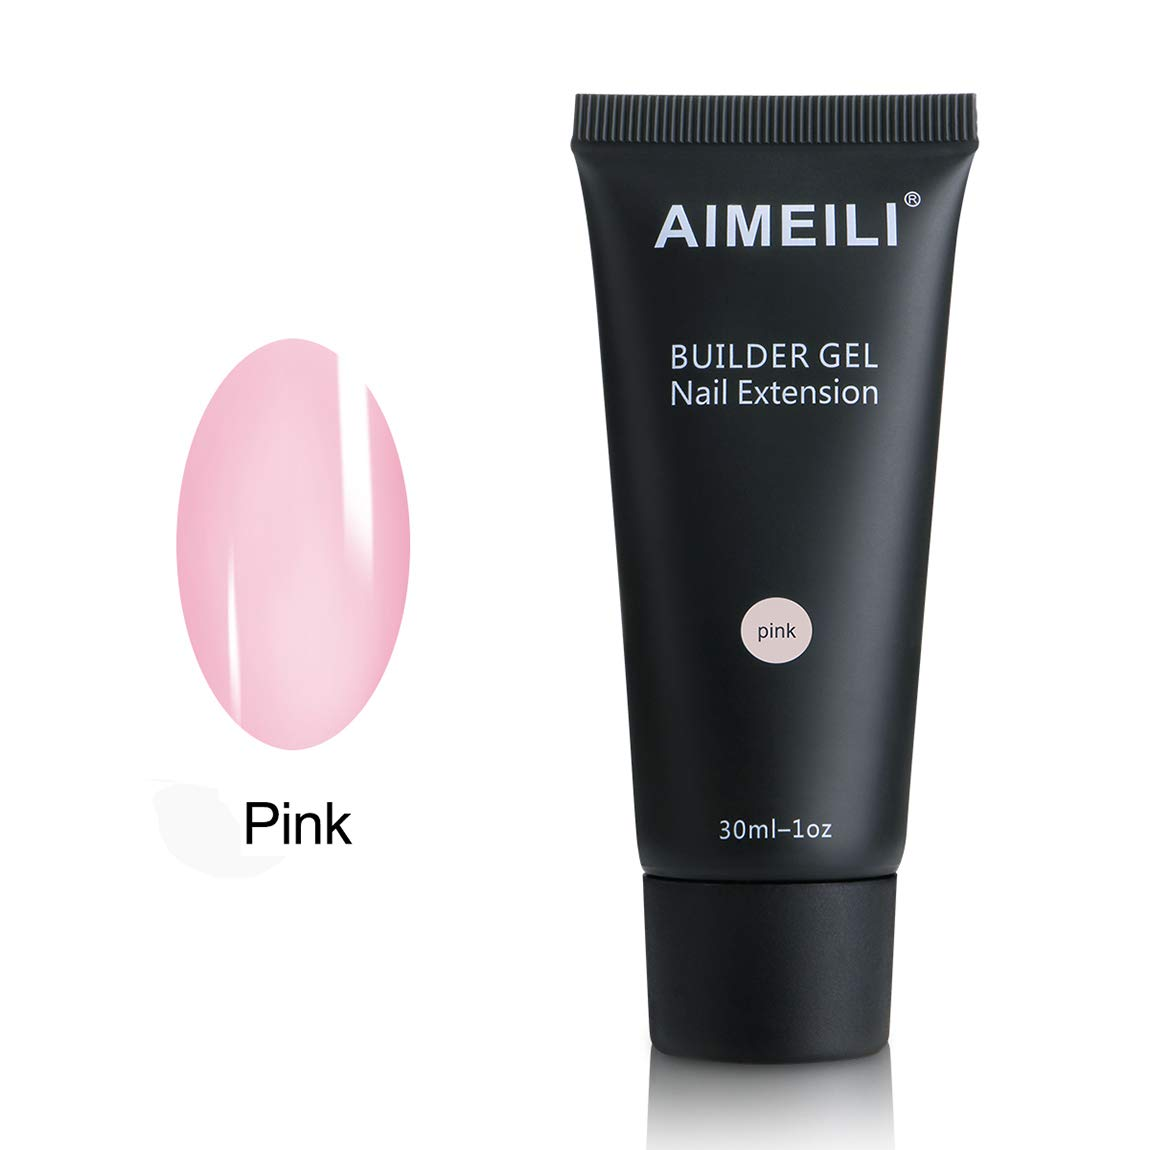 AIMEILI Clear Nail Extension Builder Gel 30ml Soak Off UV LED Nail Enhancement Tool